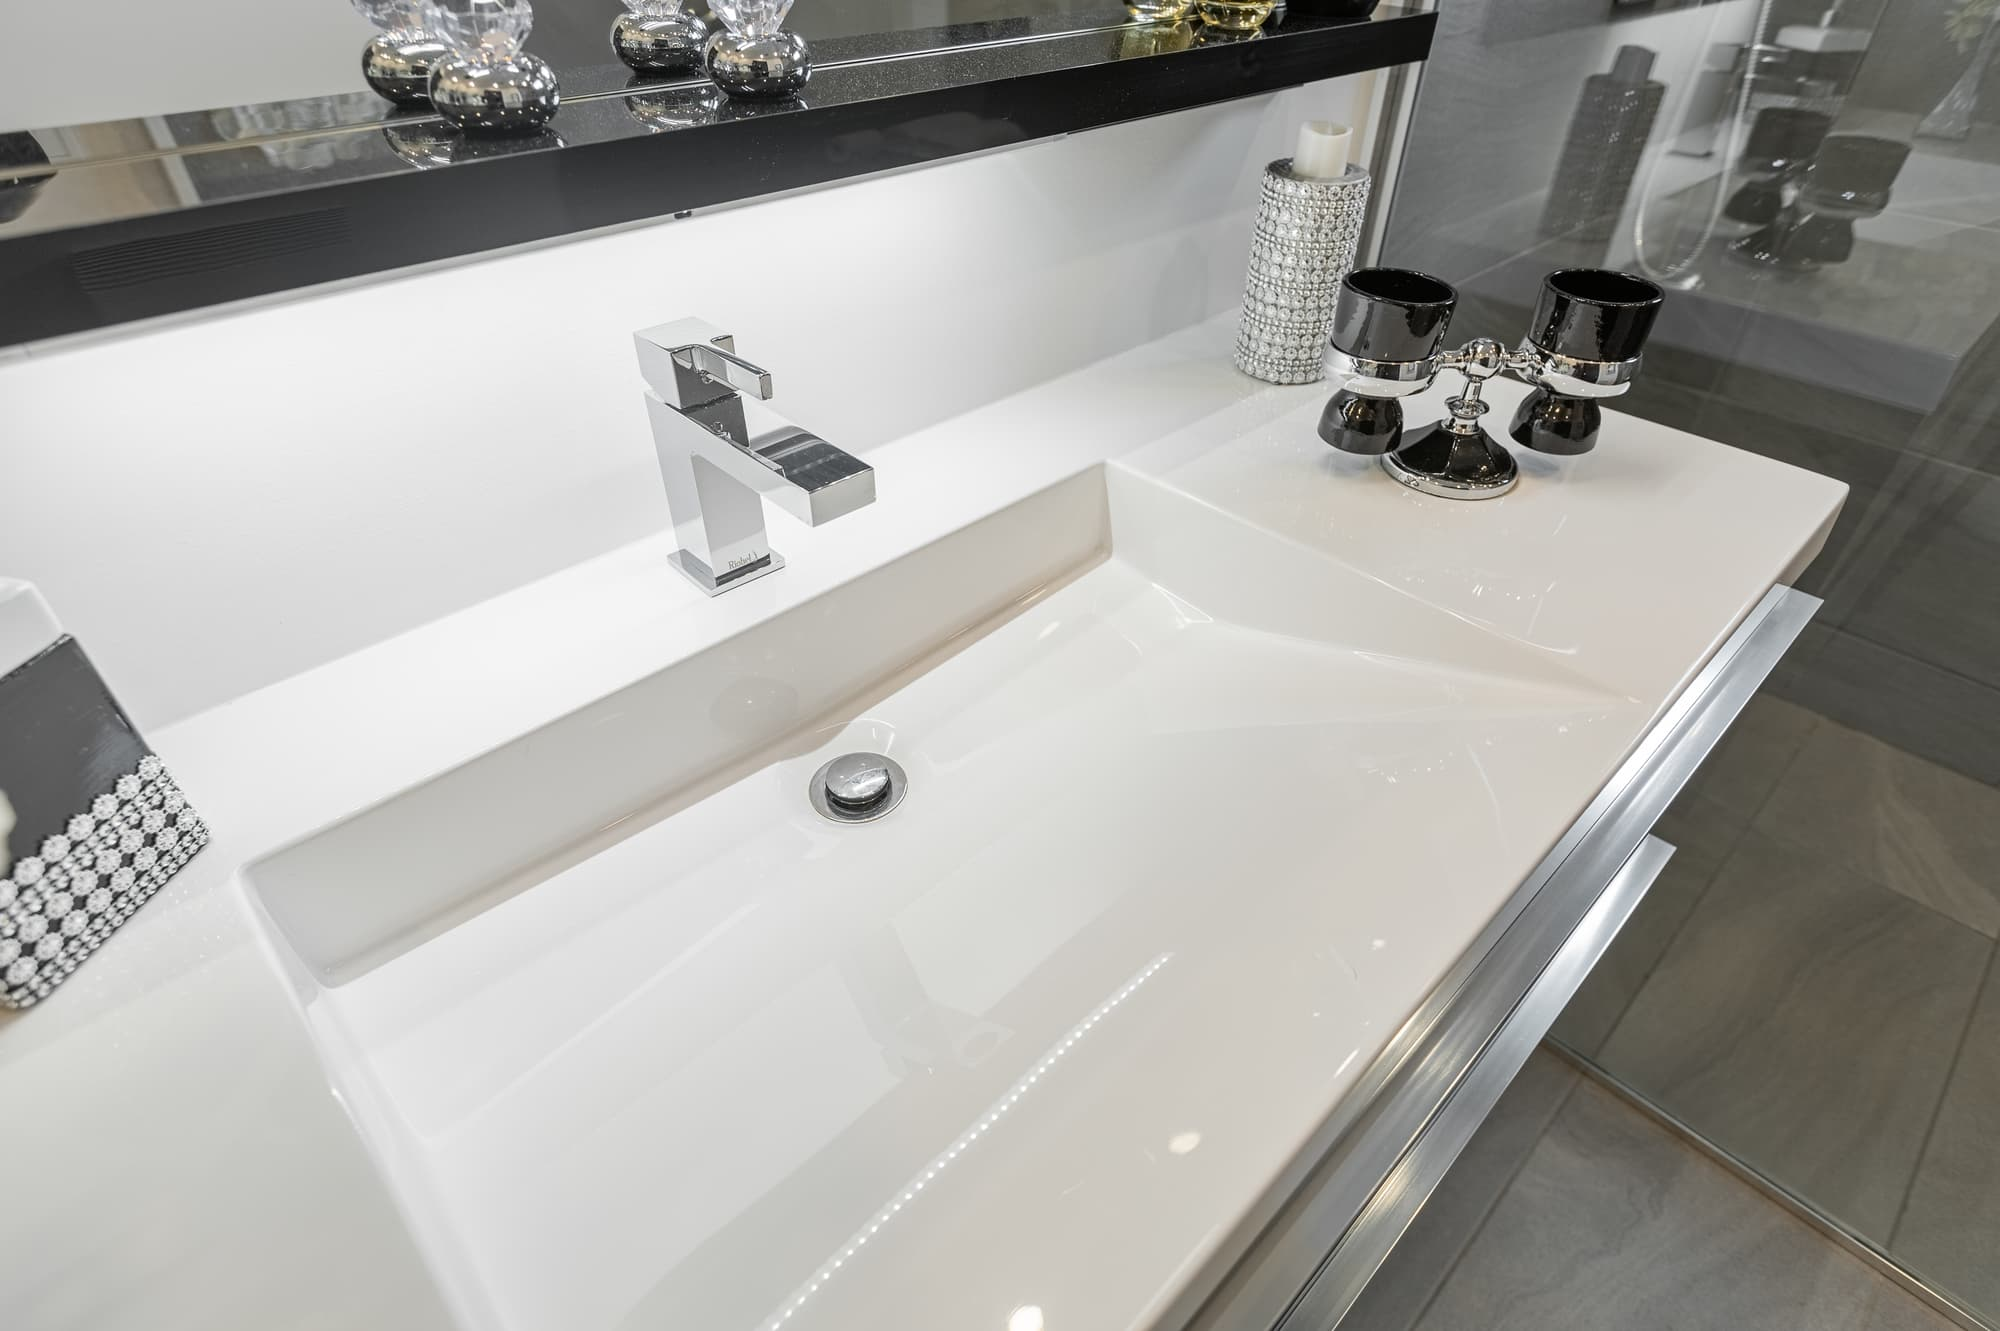 large sink with silver faucet